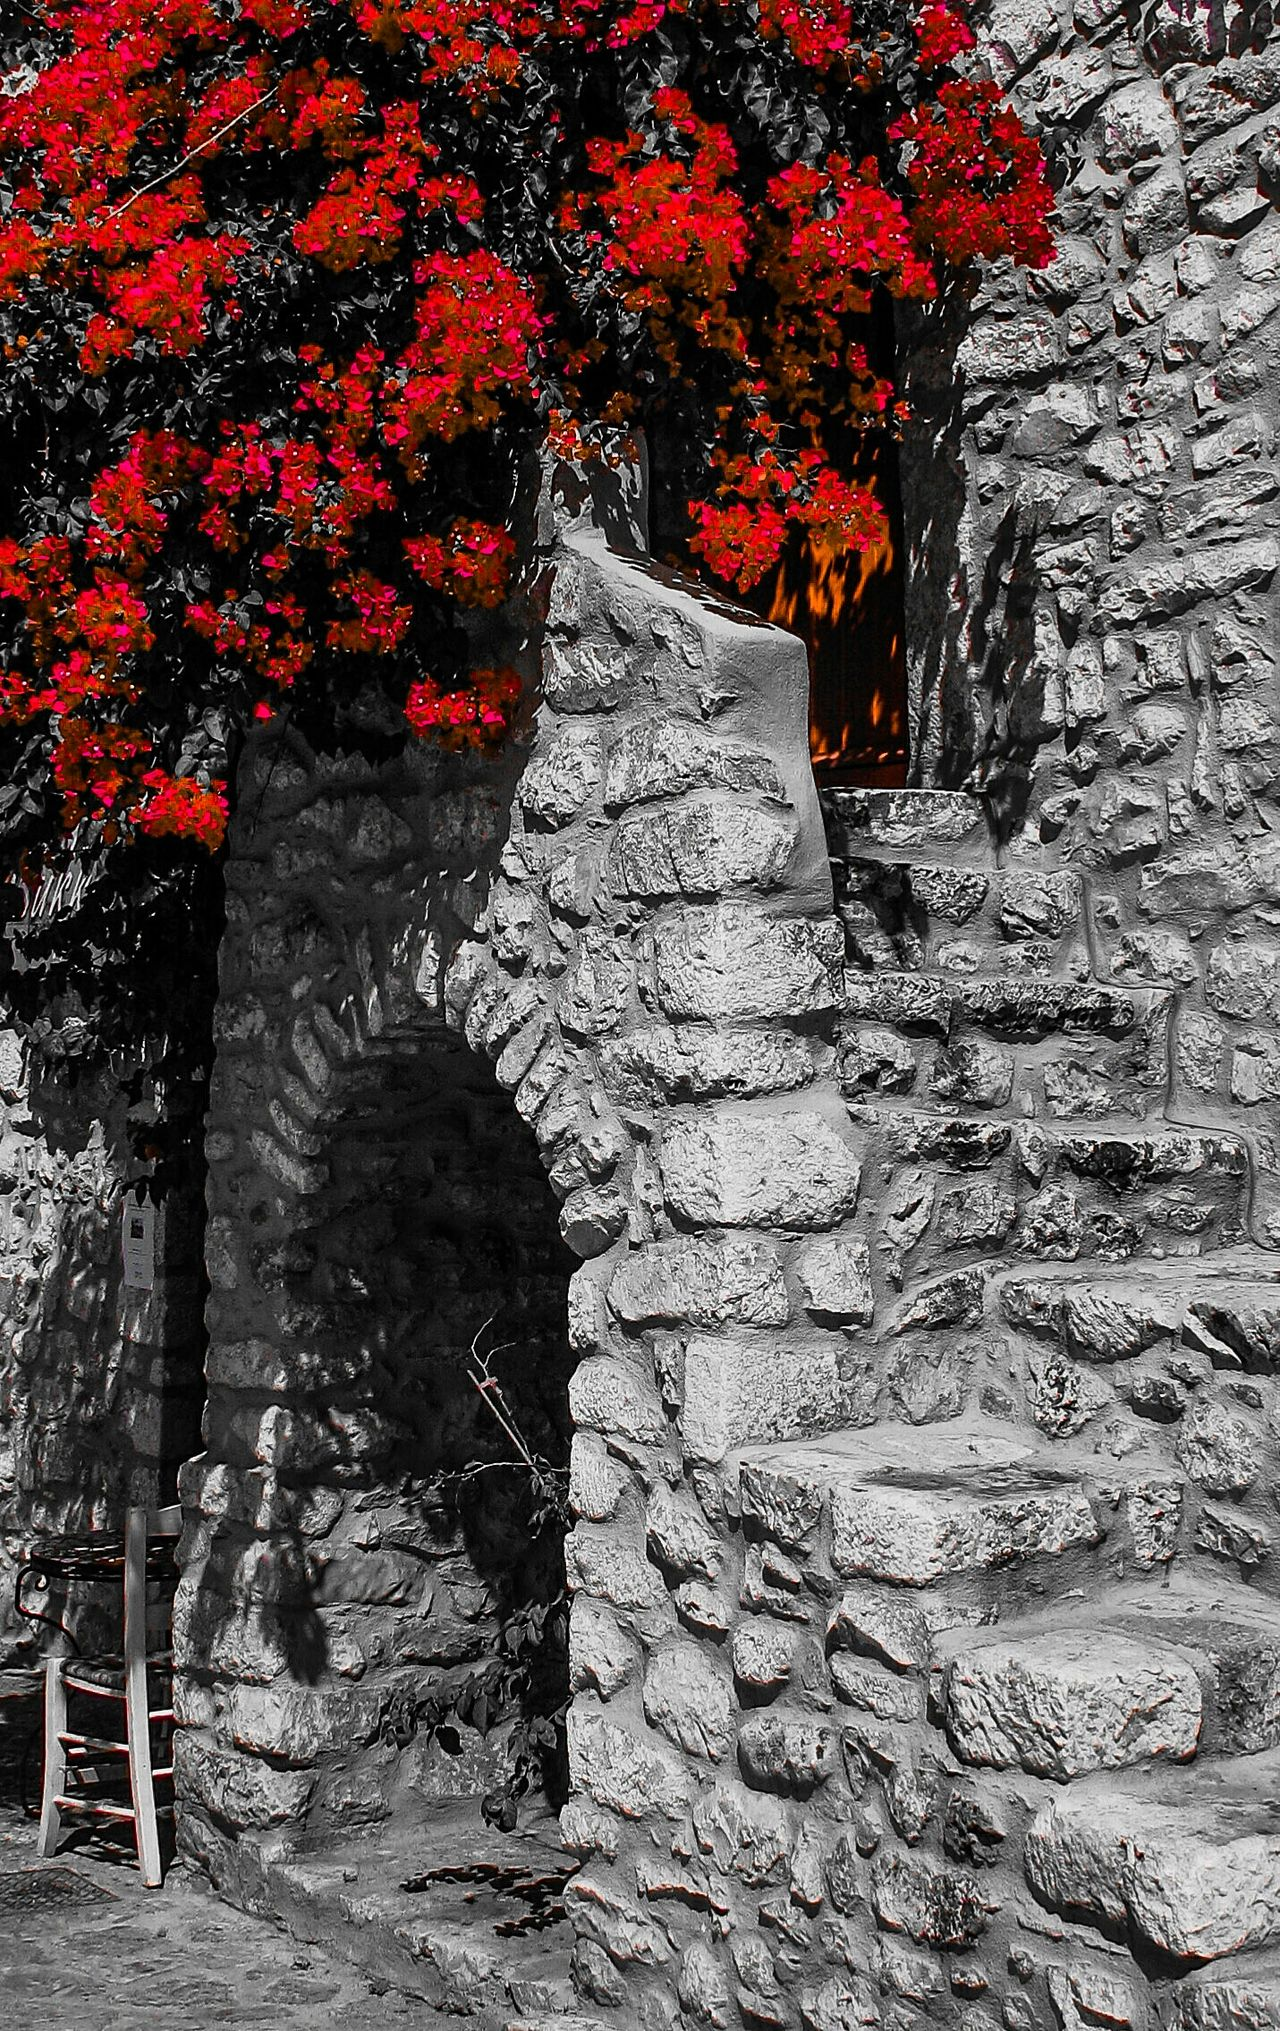 Bougainvillea Carmine Stairs Stone House Flowers Red Flowers Red Red And Black Nature Beauty In Nature Neighborhood Map The Street Photographer - 2017 EyeEm Awards The Architect - 2017 EyeEm Awards The Great Outdoors - 2017 EyeEm Awards Mani Greece